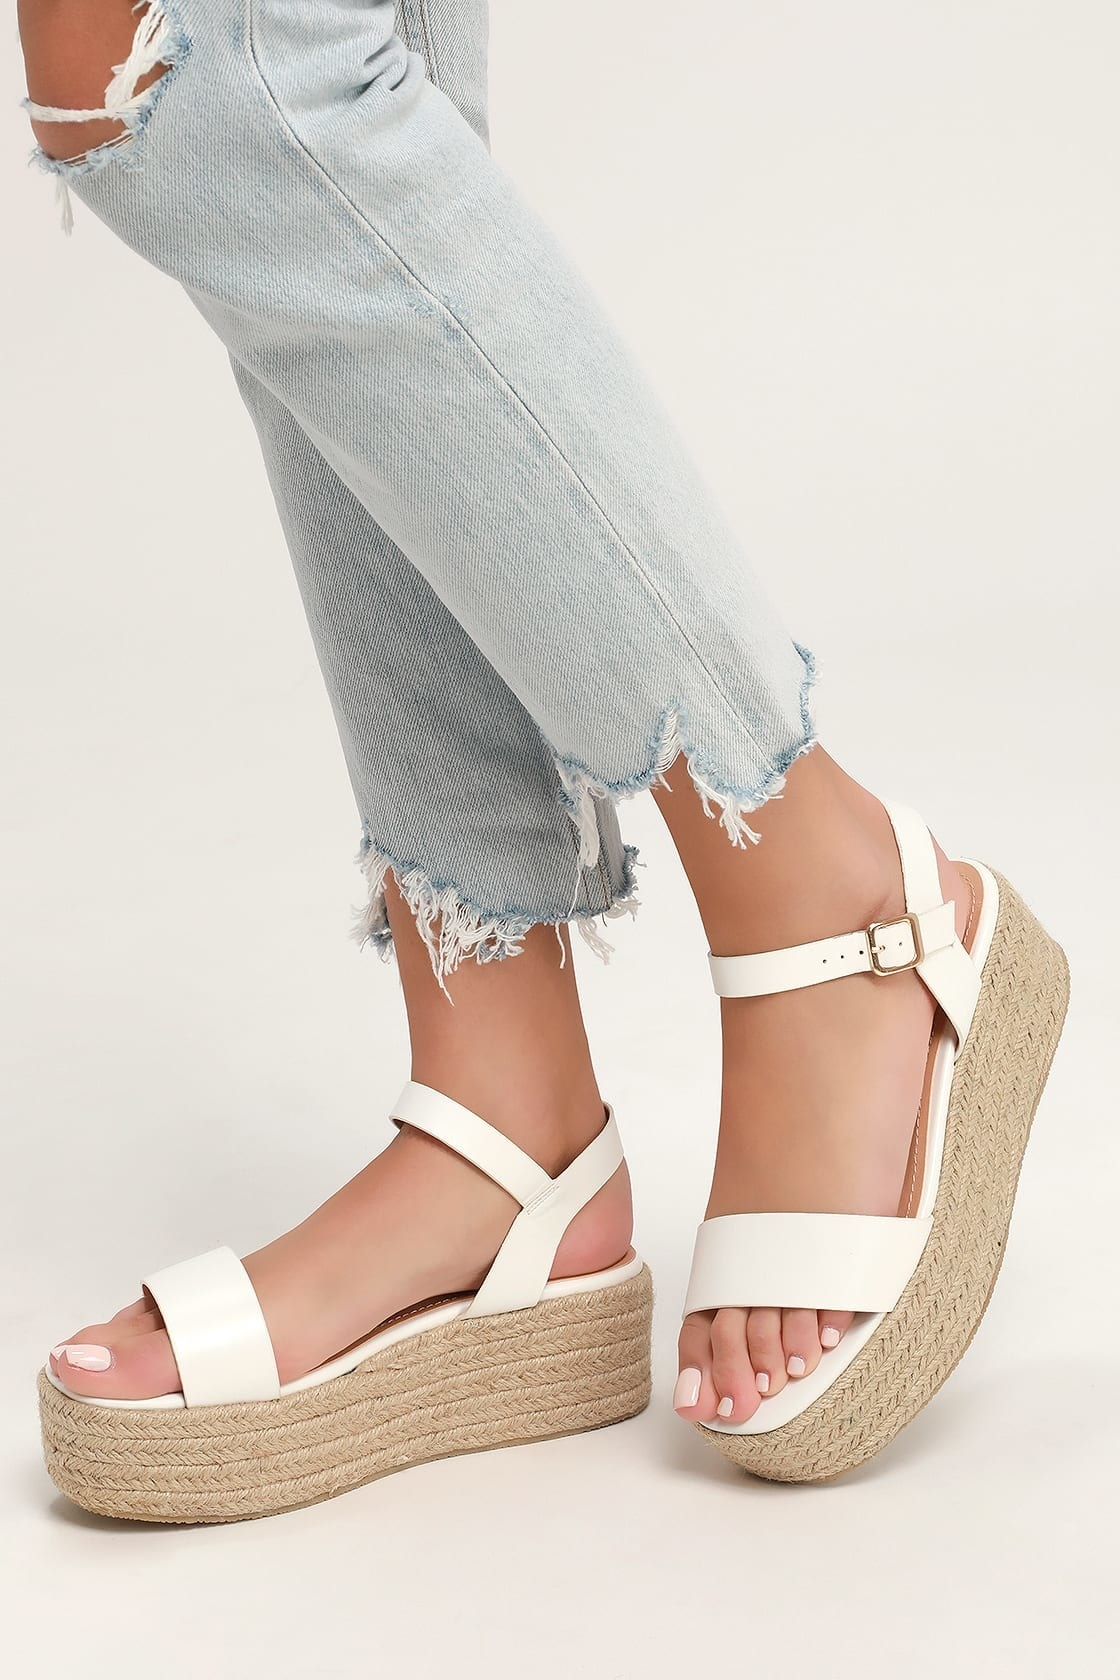 feet in strappy white platform espadrille sandals with silver buckle